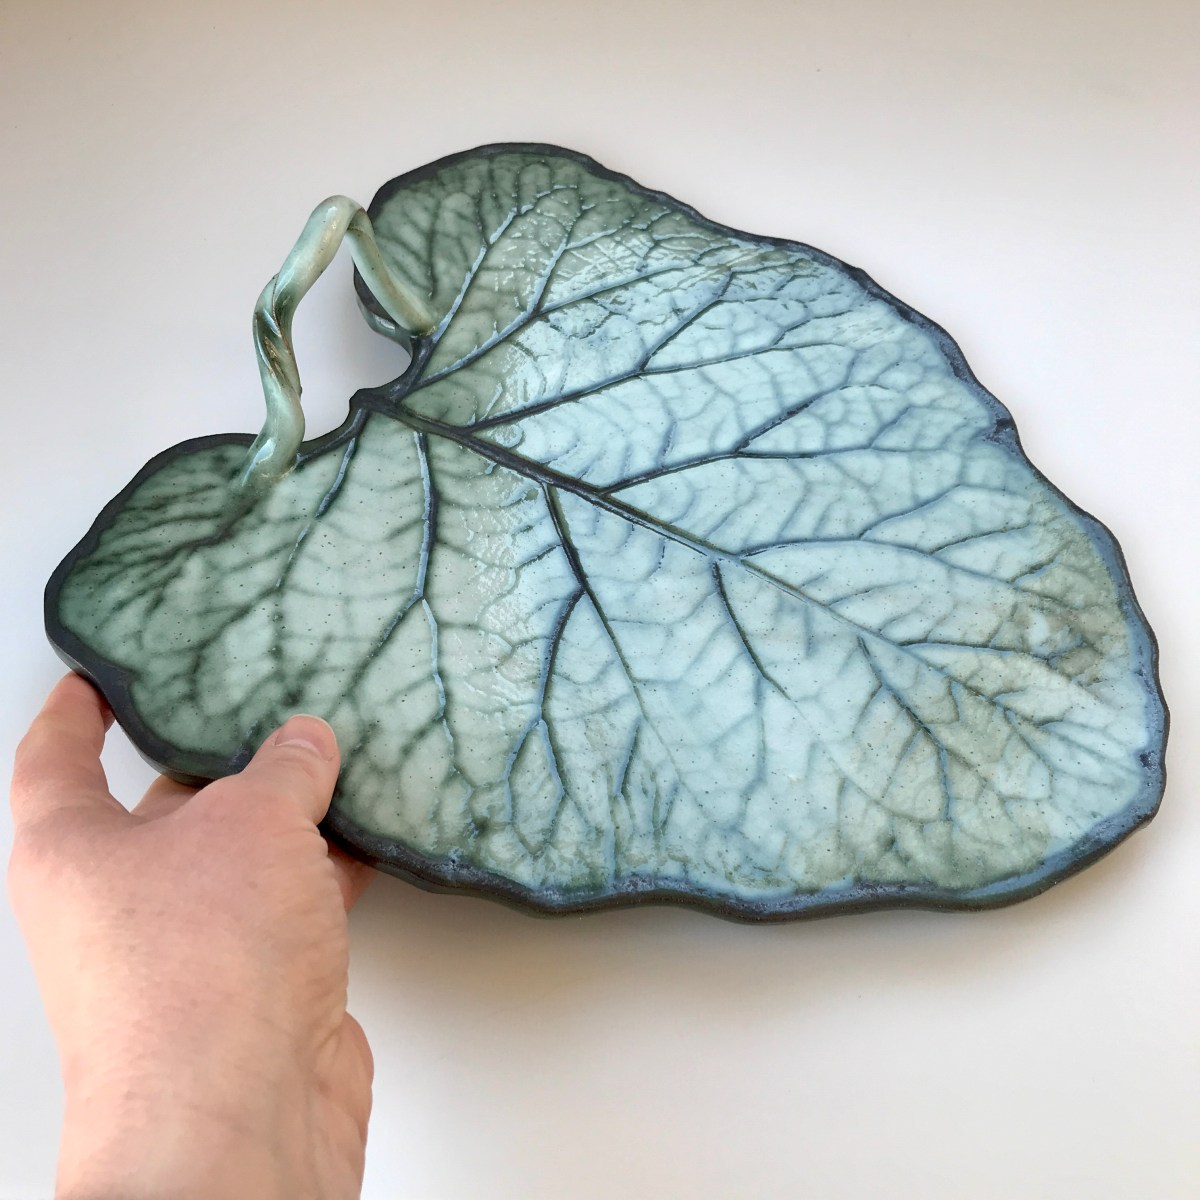 Burdock Leaf Sharing Platter by Sonya Ceramic Art (size context with hand)